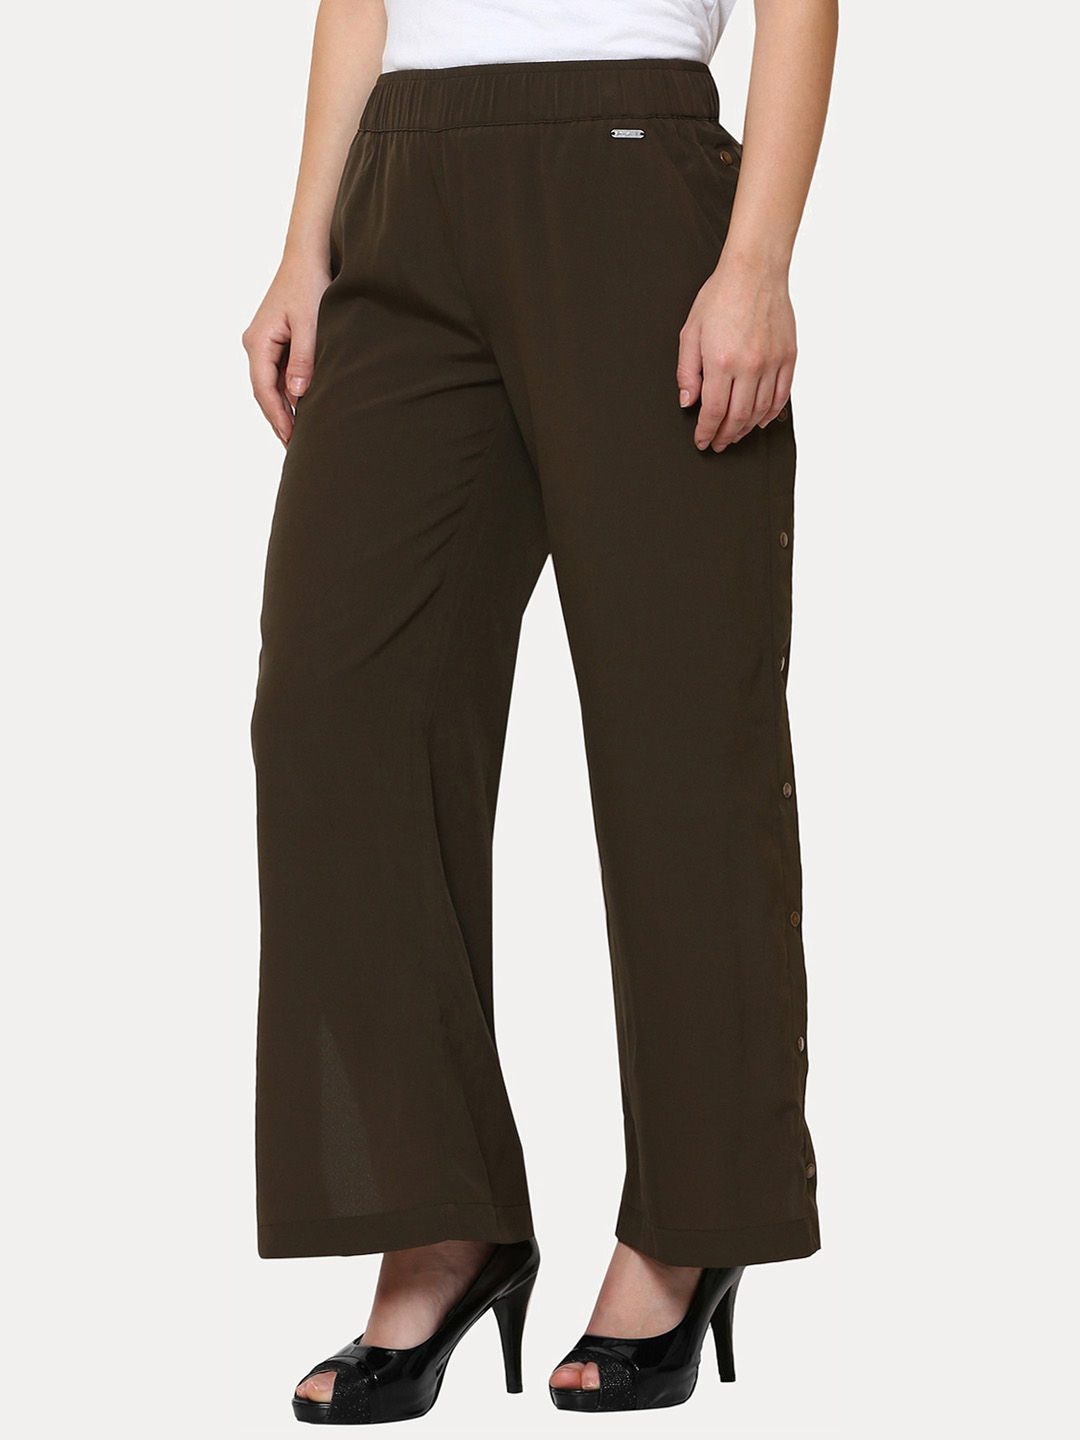 OLIVE SOLID PALAZZOS